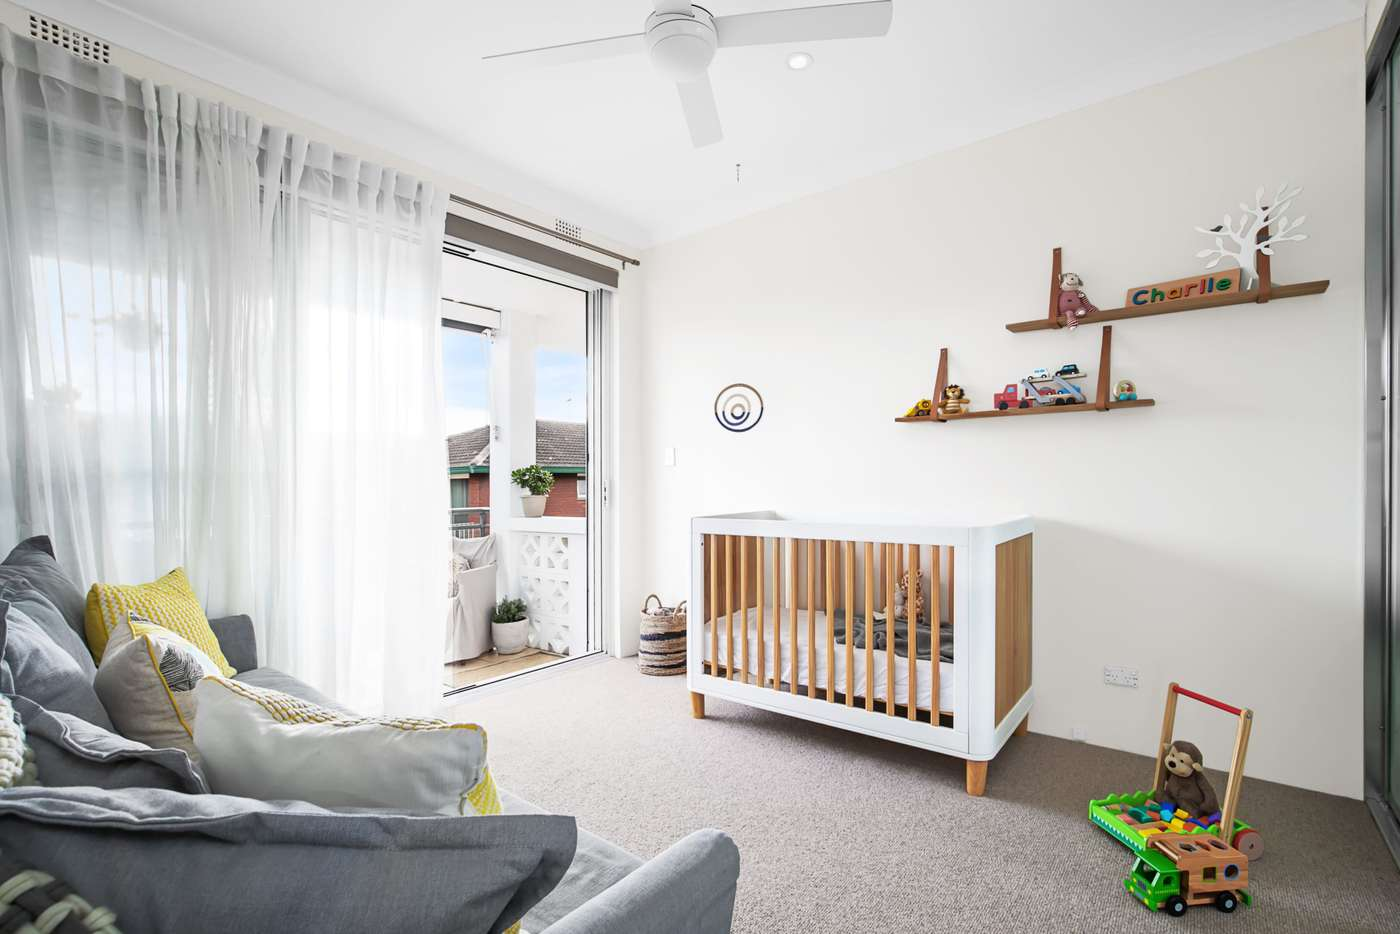 Sixth view of Homely apartment listing, 10/26 Bennett Street, Cremorne NSW 2090